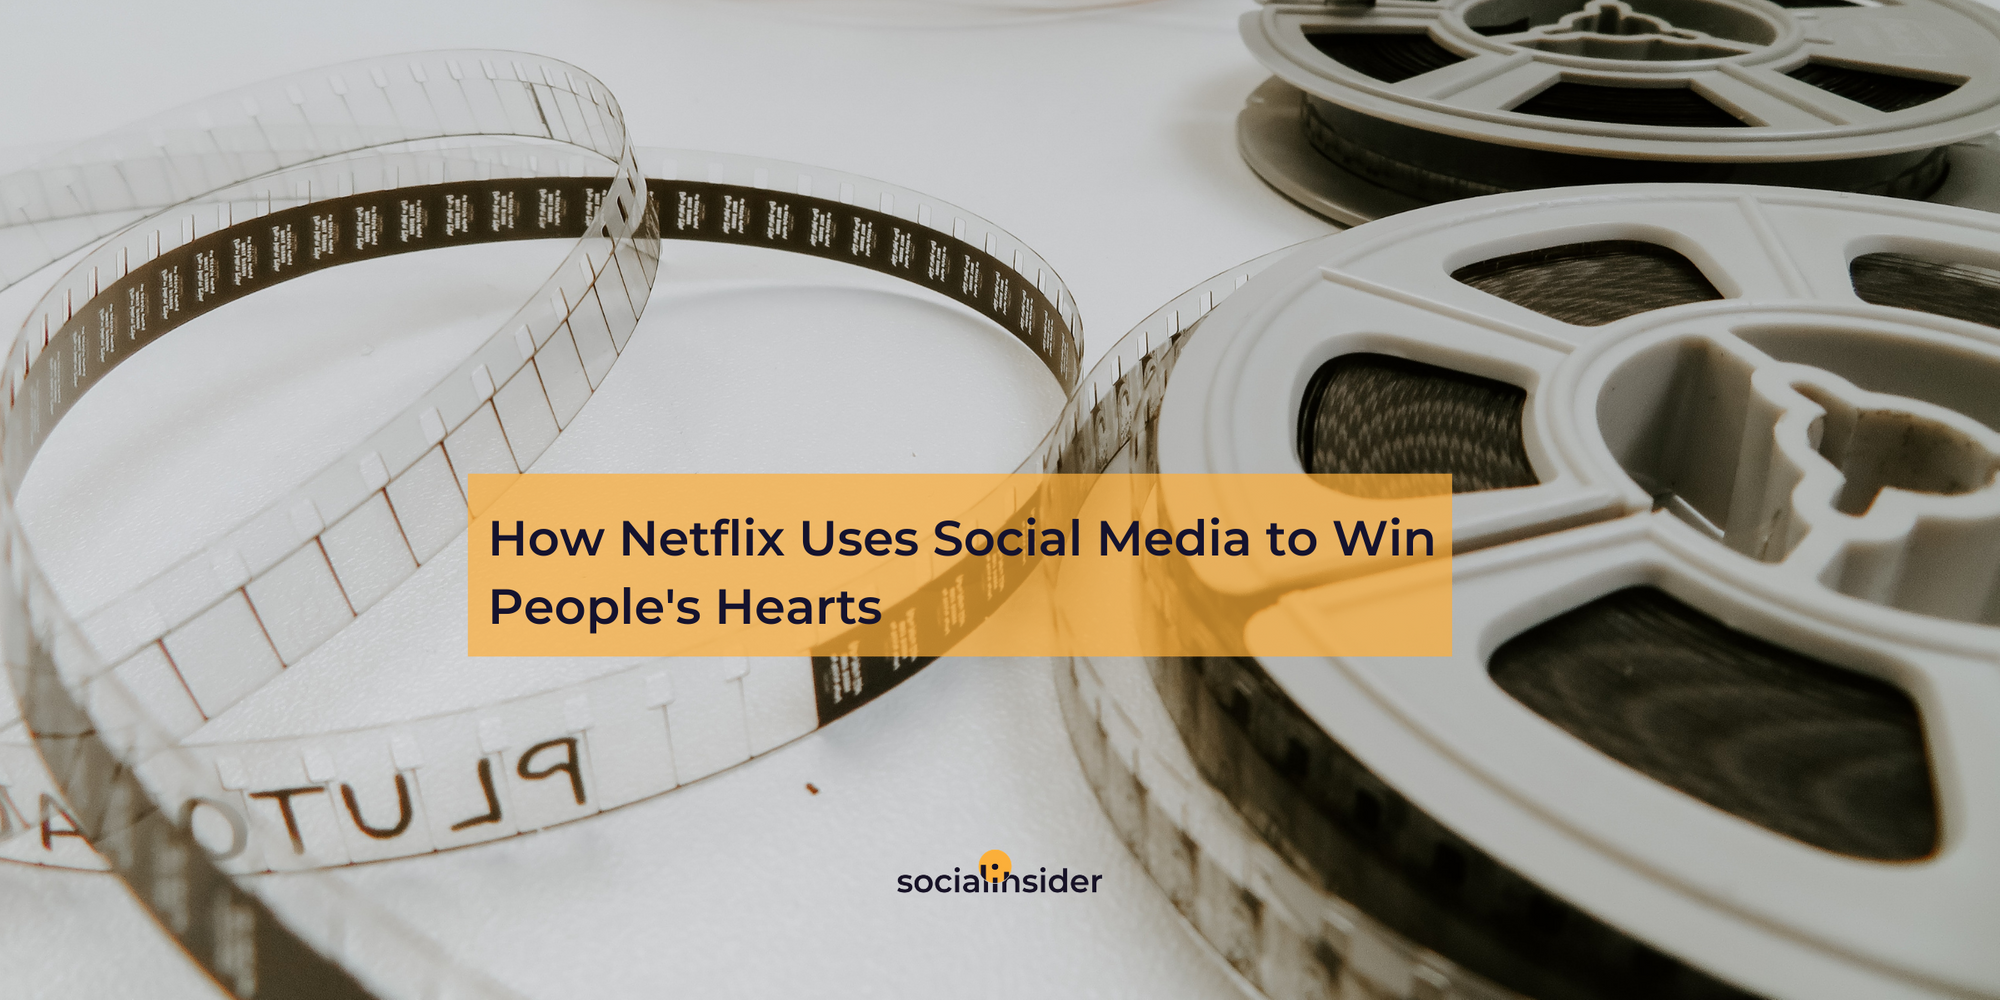 How Netflix Uses Social Media to Win People's Hearts